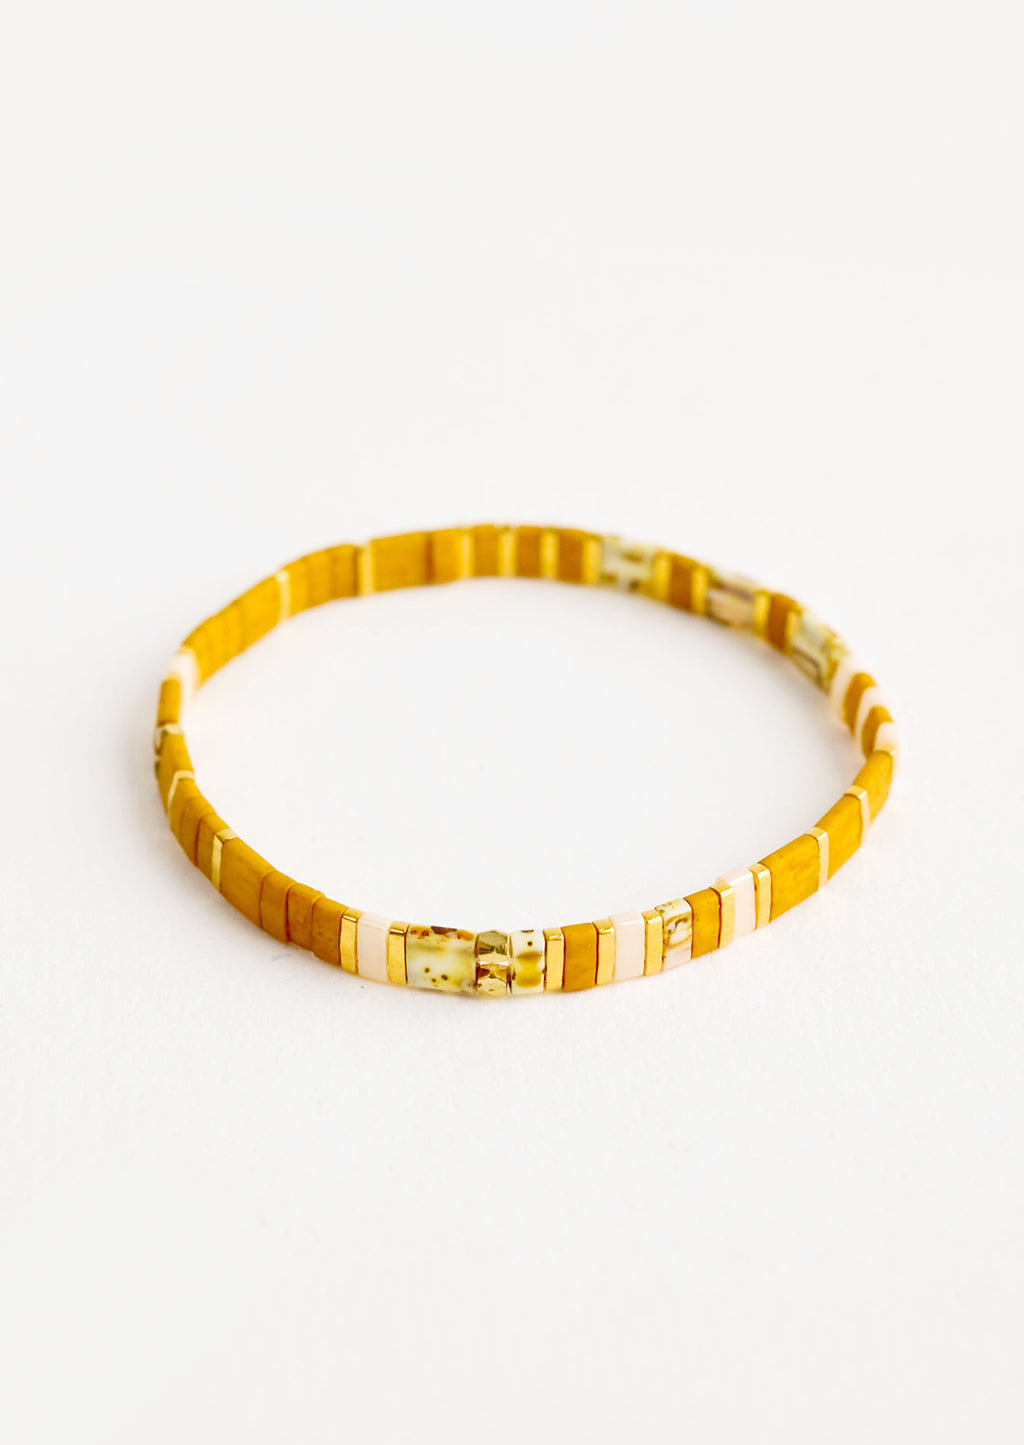 Mustard / Shell Multi: Bracelet featuring flat mustard beads interspersed with flat gold bead on an elastic cord.